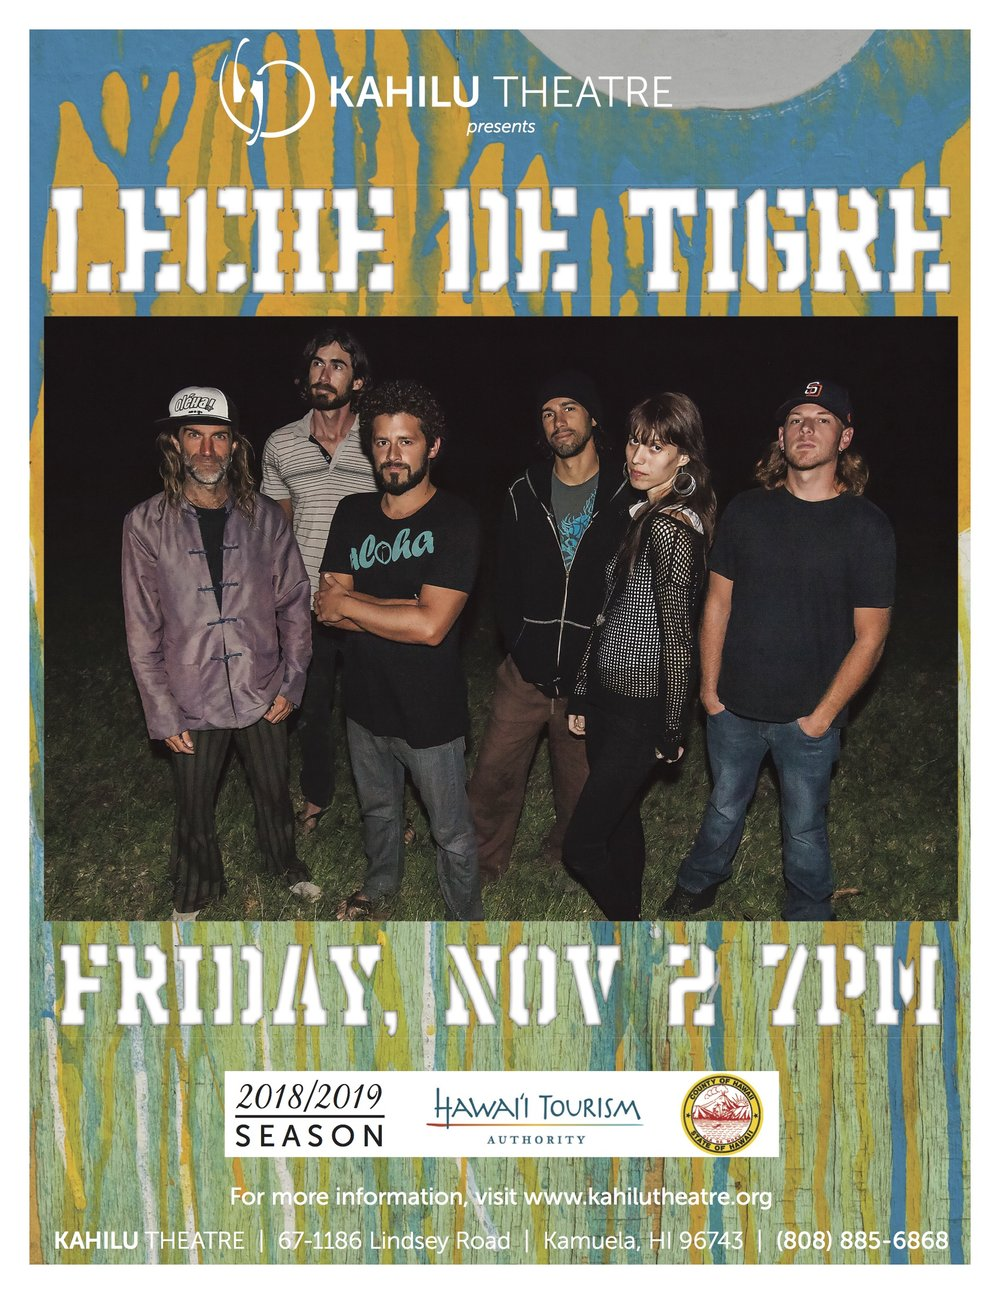 Nov 2nd party w/Leche - Kahilu Theatre Presents